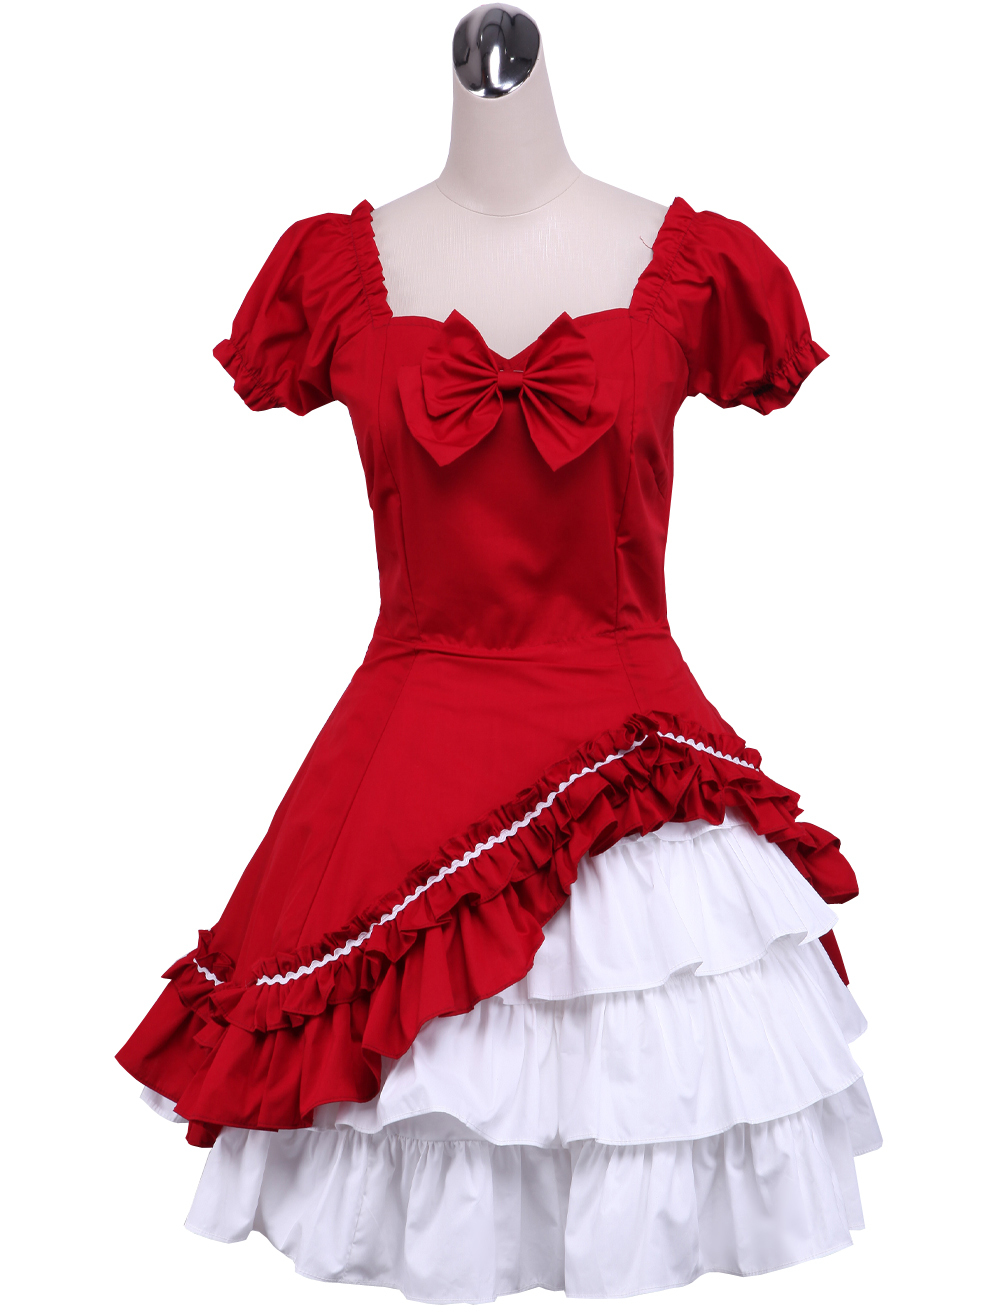 Primary image for ZeroMart Red and White Cotton Bow Ruffle Two Layer Victorian Classic Lolita Dres